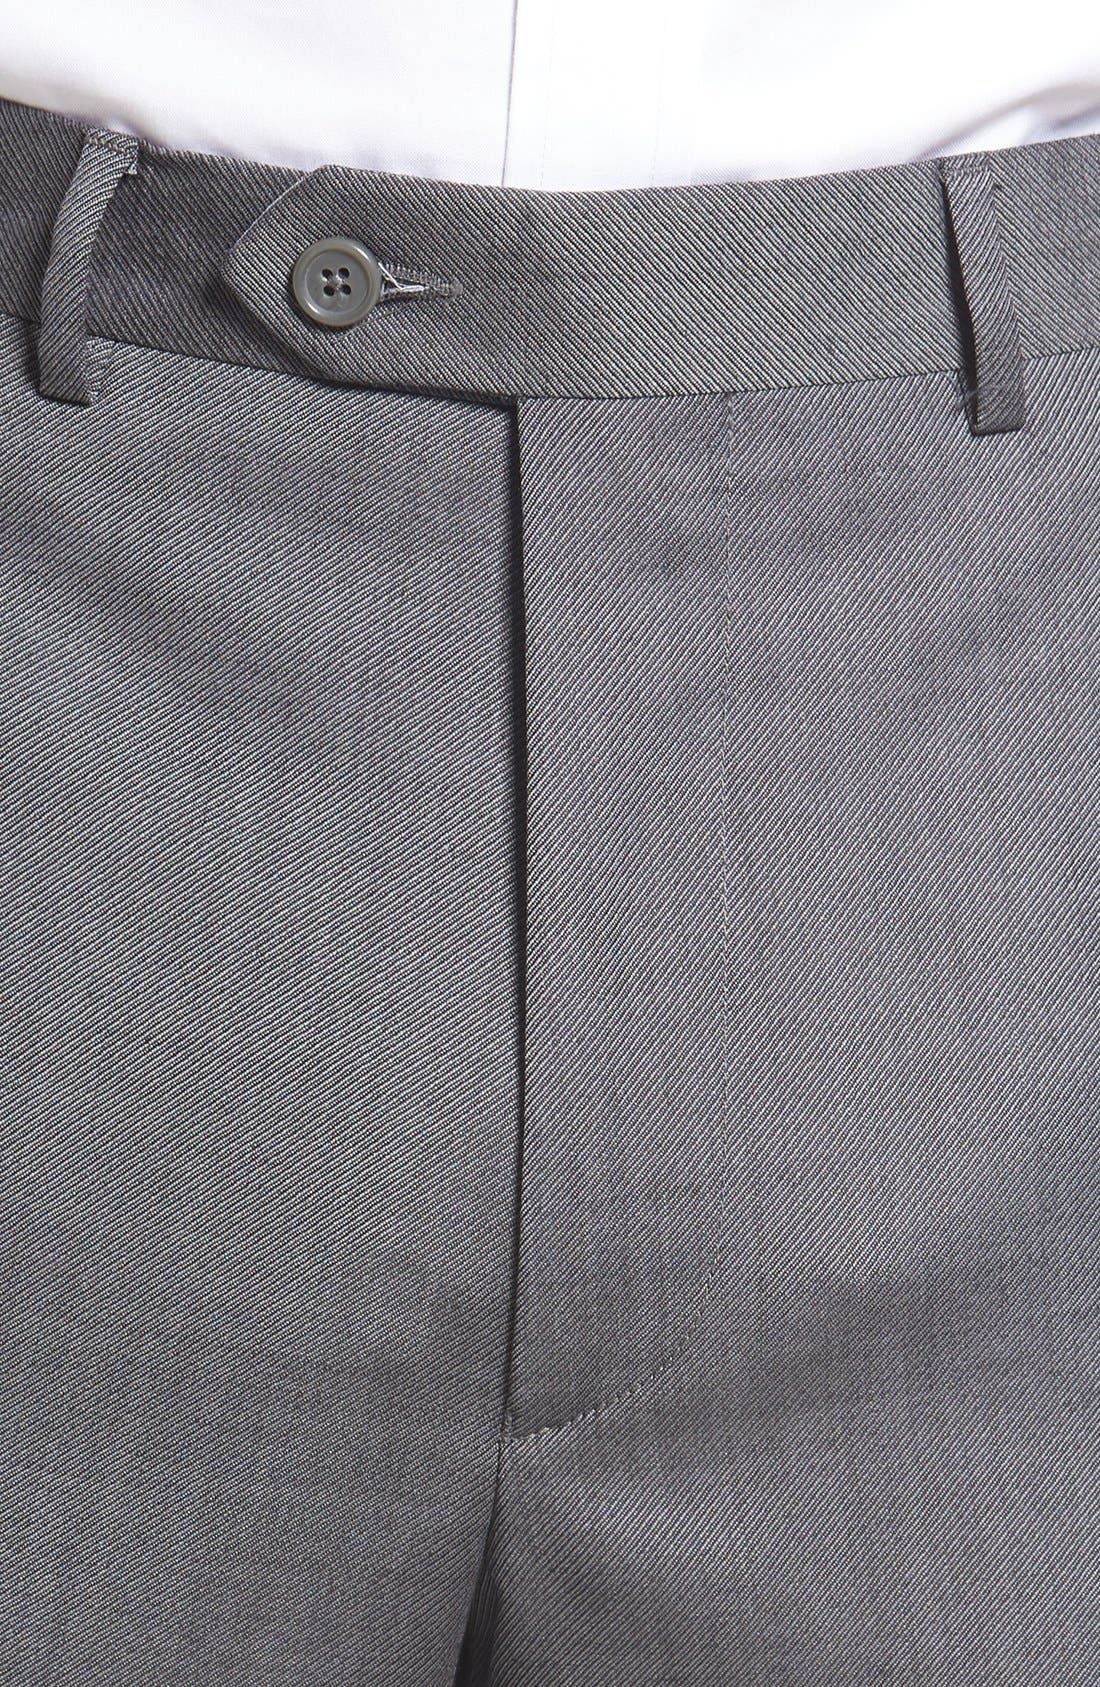 Flat Front Twill Wool Trousers,                             Alternate thumbnail 4, color,                             Medium Grey